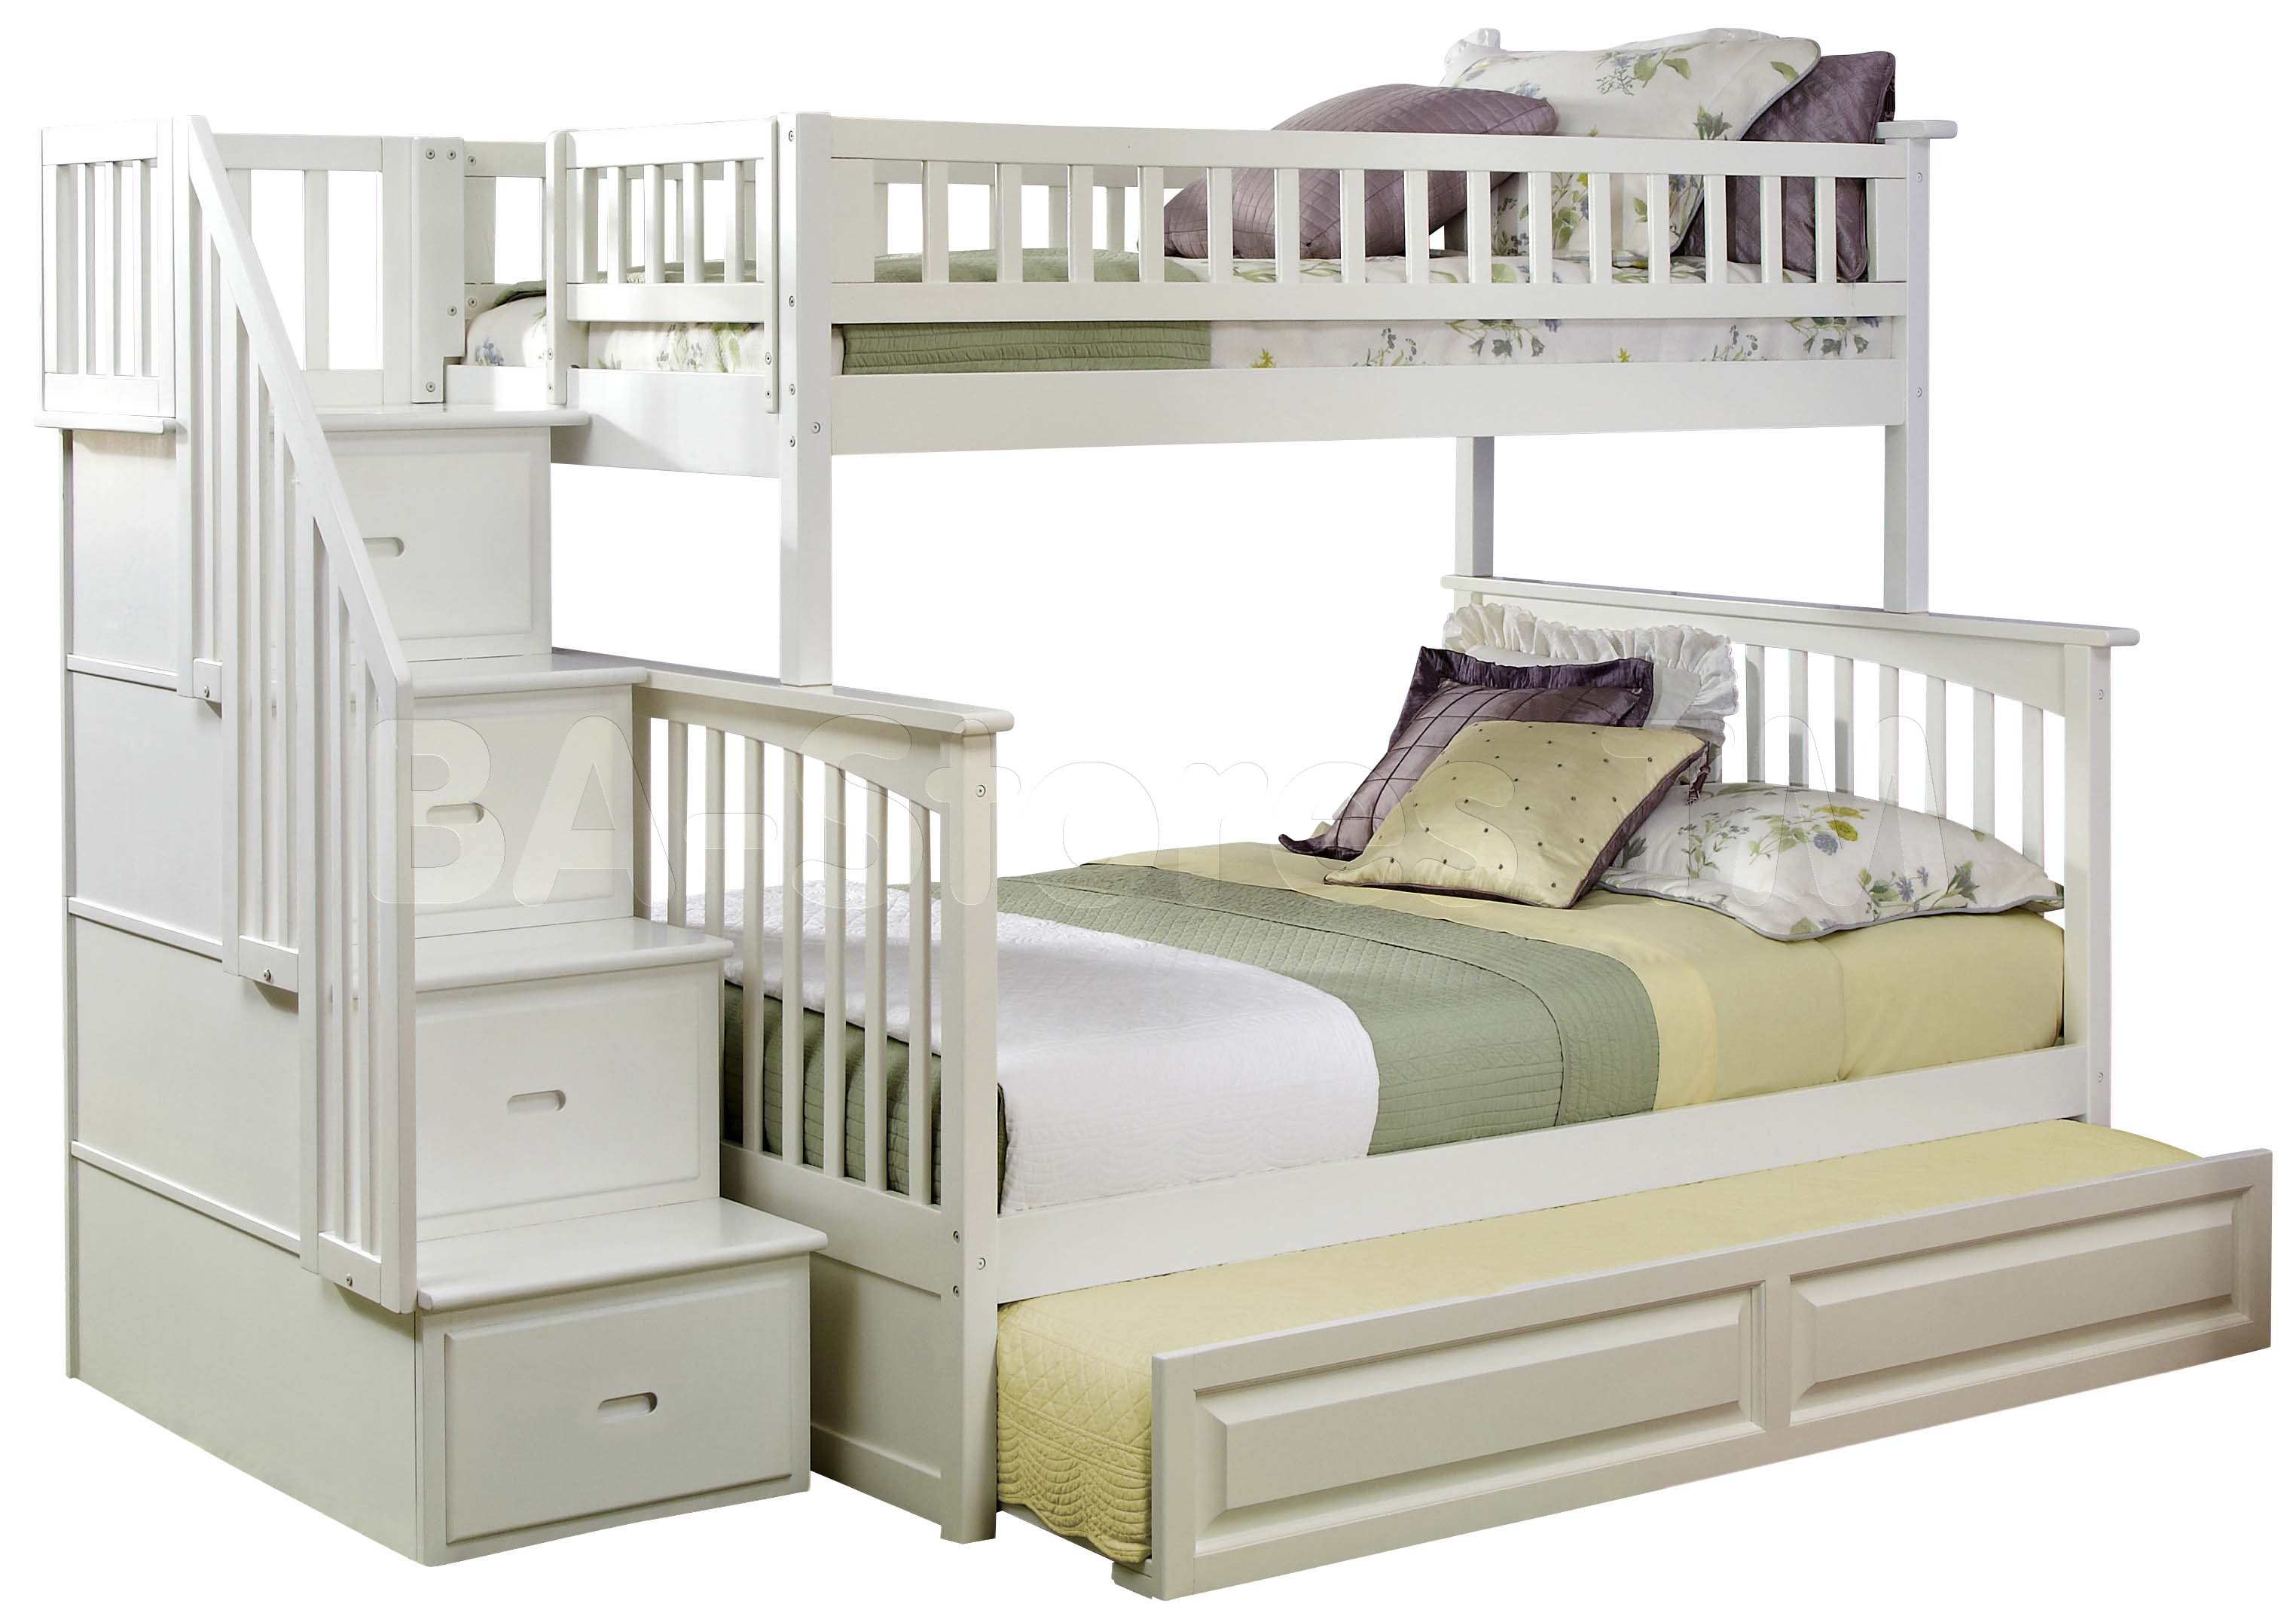 lovely white wooden Bunk Beds With Stairs and drawers plus lovely bedding for teen bedroom decor ideas